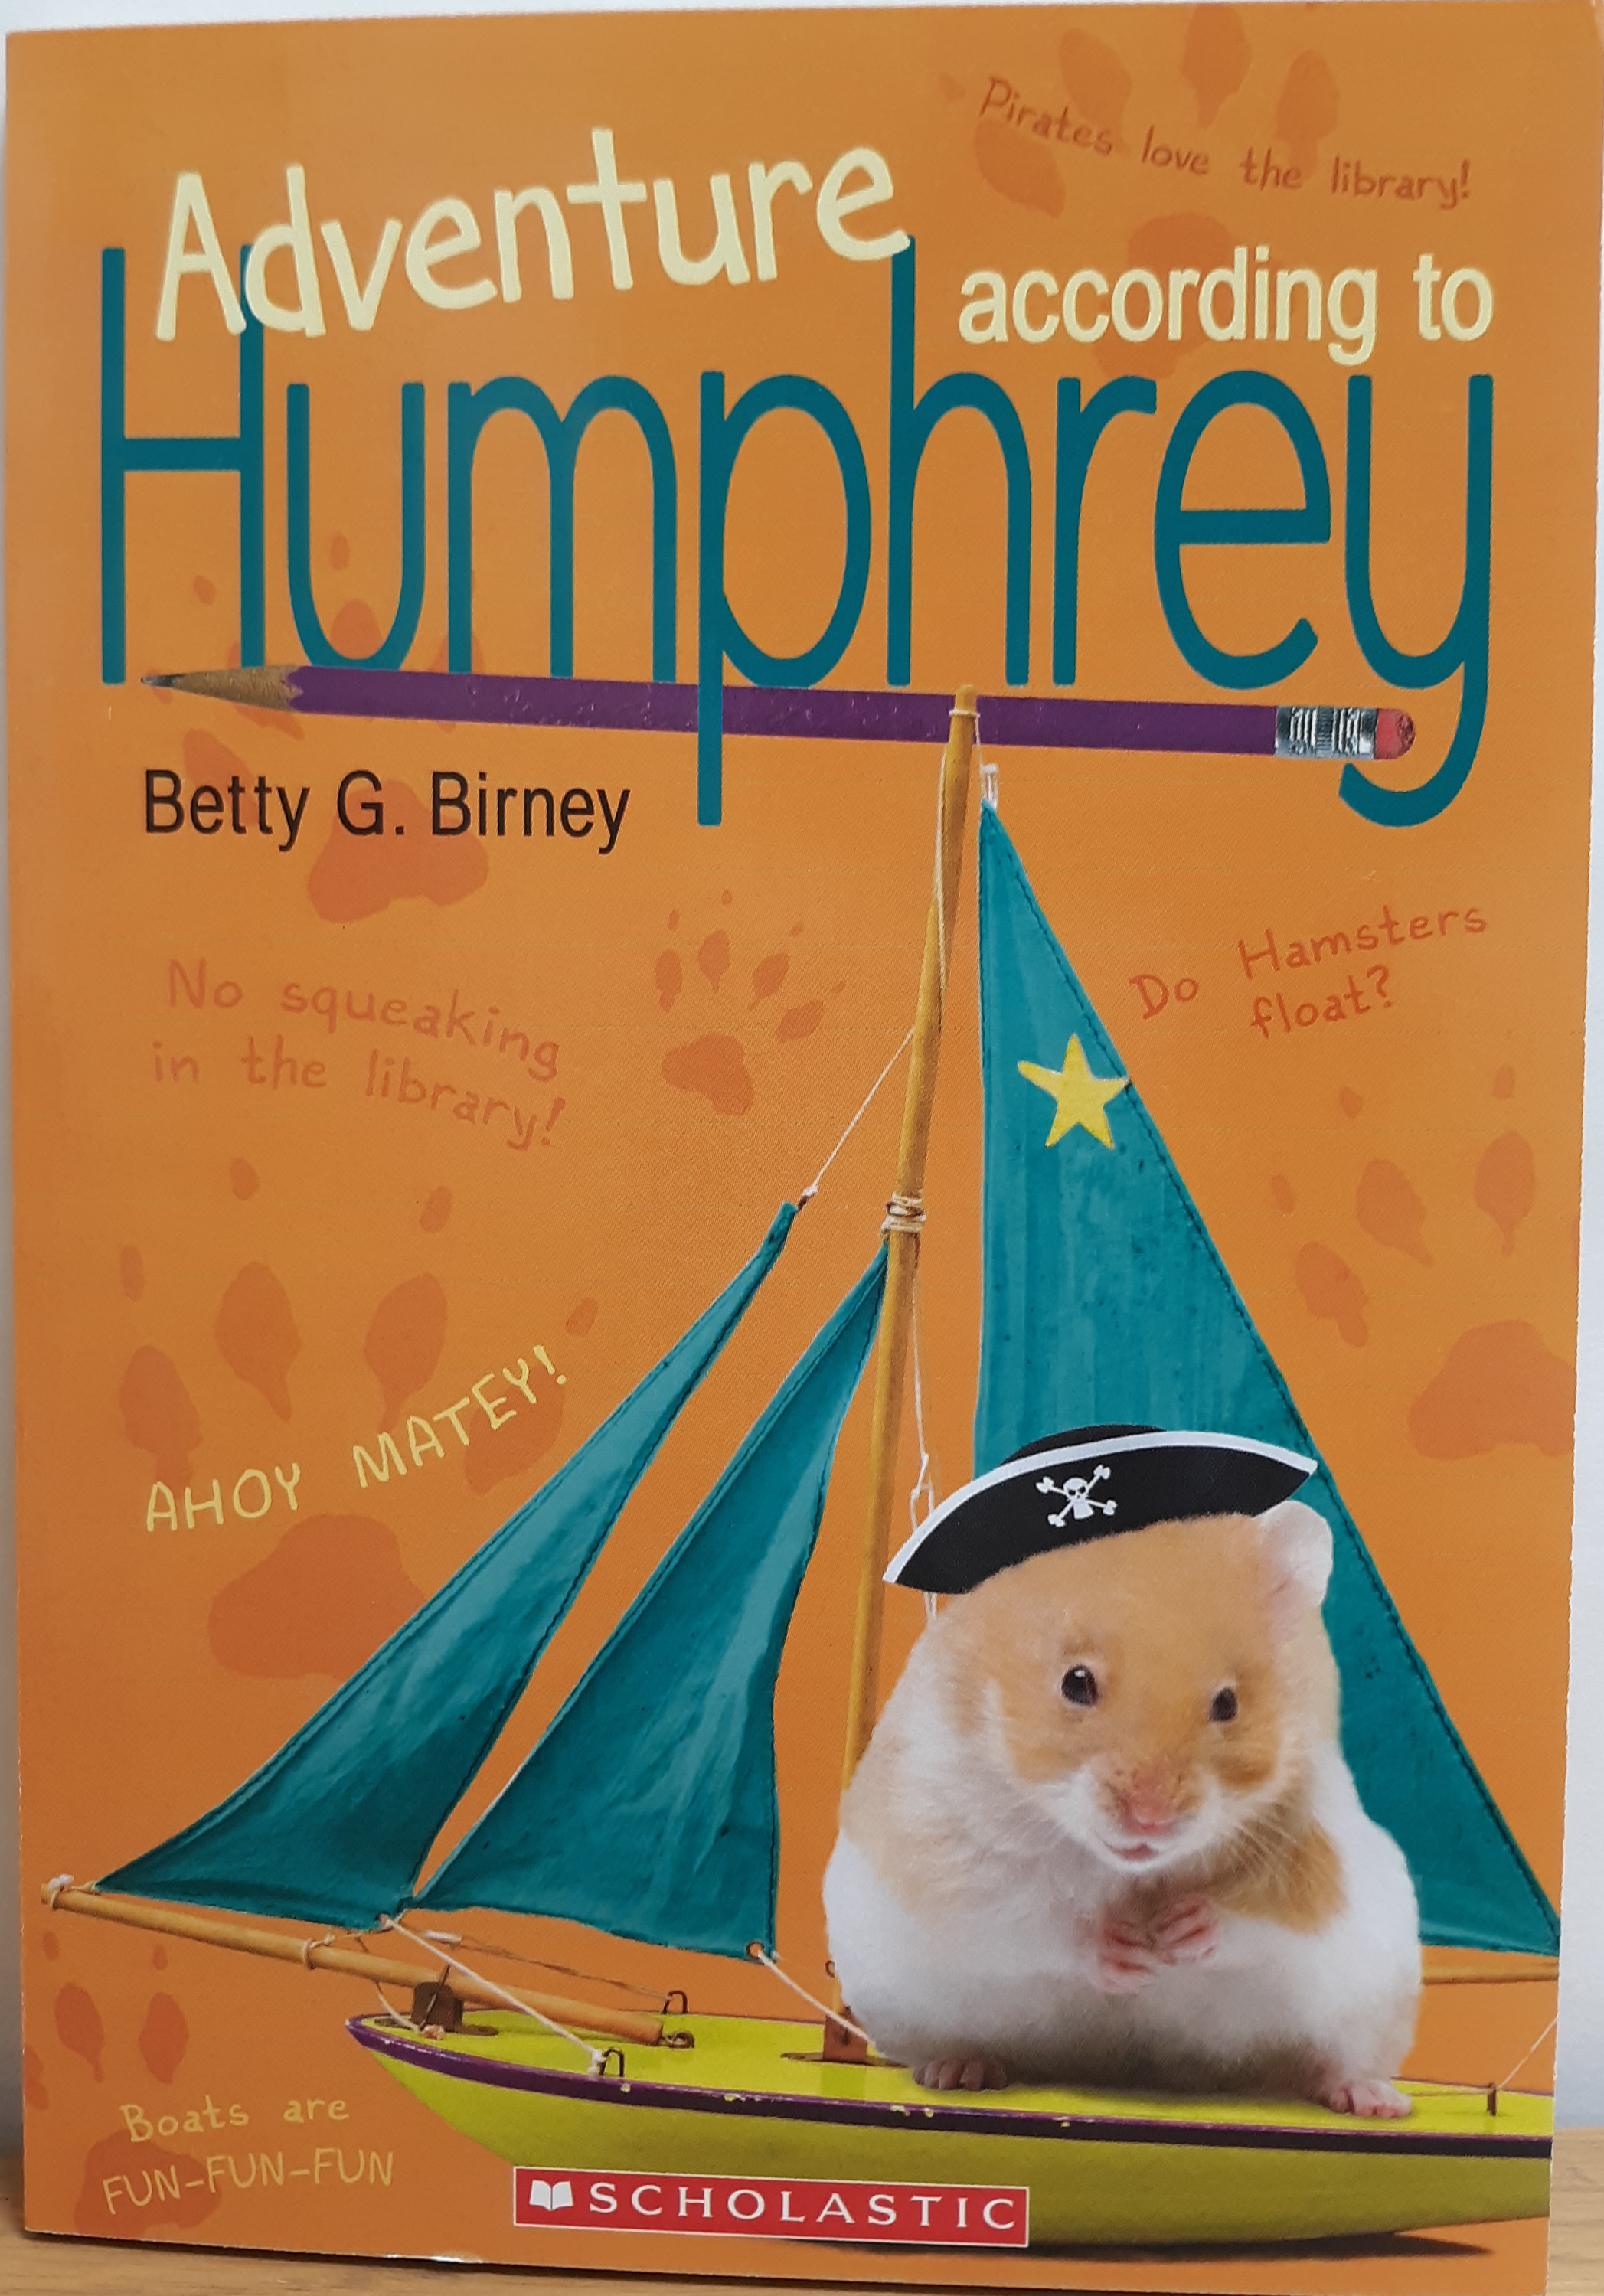 https://0201.nccdn.net/1_2/000/000/0e1/44e/humphrey-adventure.png